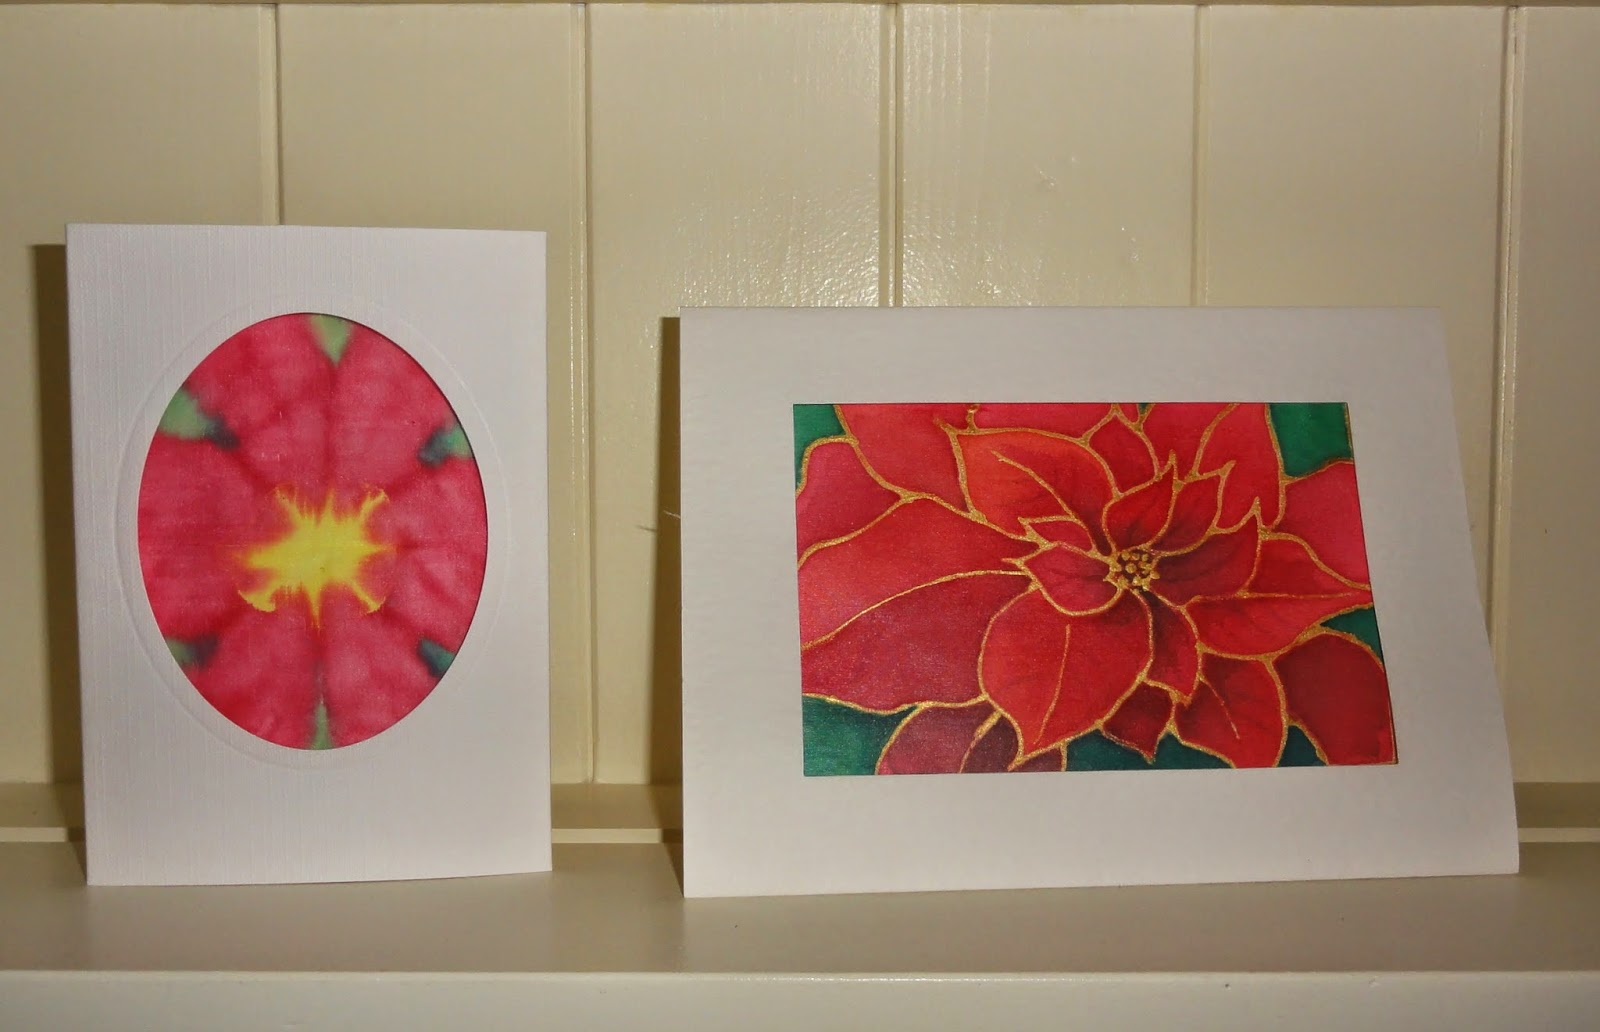 Colours and textures poinsettias on silk greetings cards i have written a step by step demo for leisure painter magazine jan 2015 out dec 6th on painting poinsettias on silk for greeting cards kristyandbryce Gallery